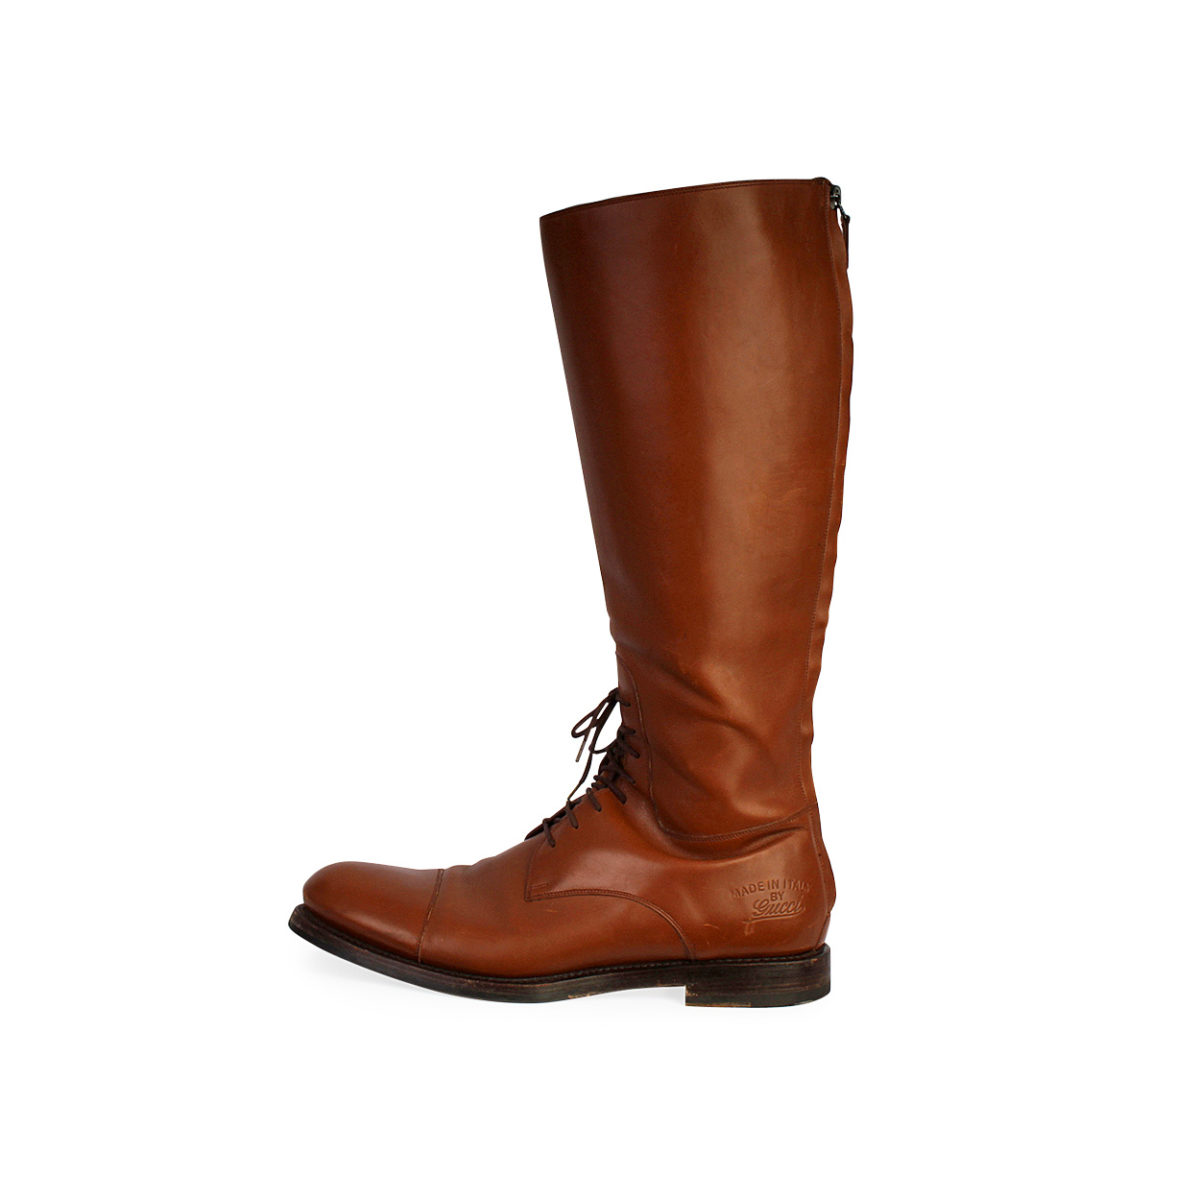 62be7a53a GUCCI Leather Lace Up Toe Cap Riding Boots Brown - S: 43 (9) | Luxity